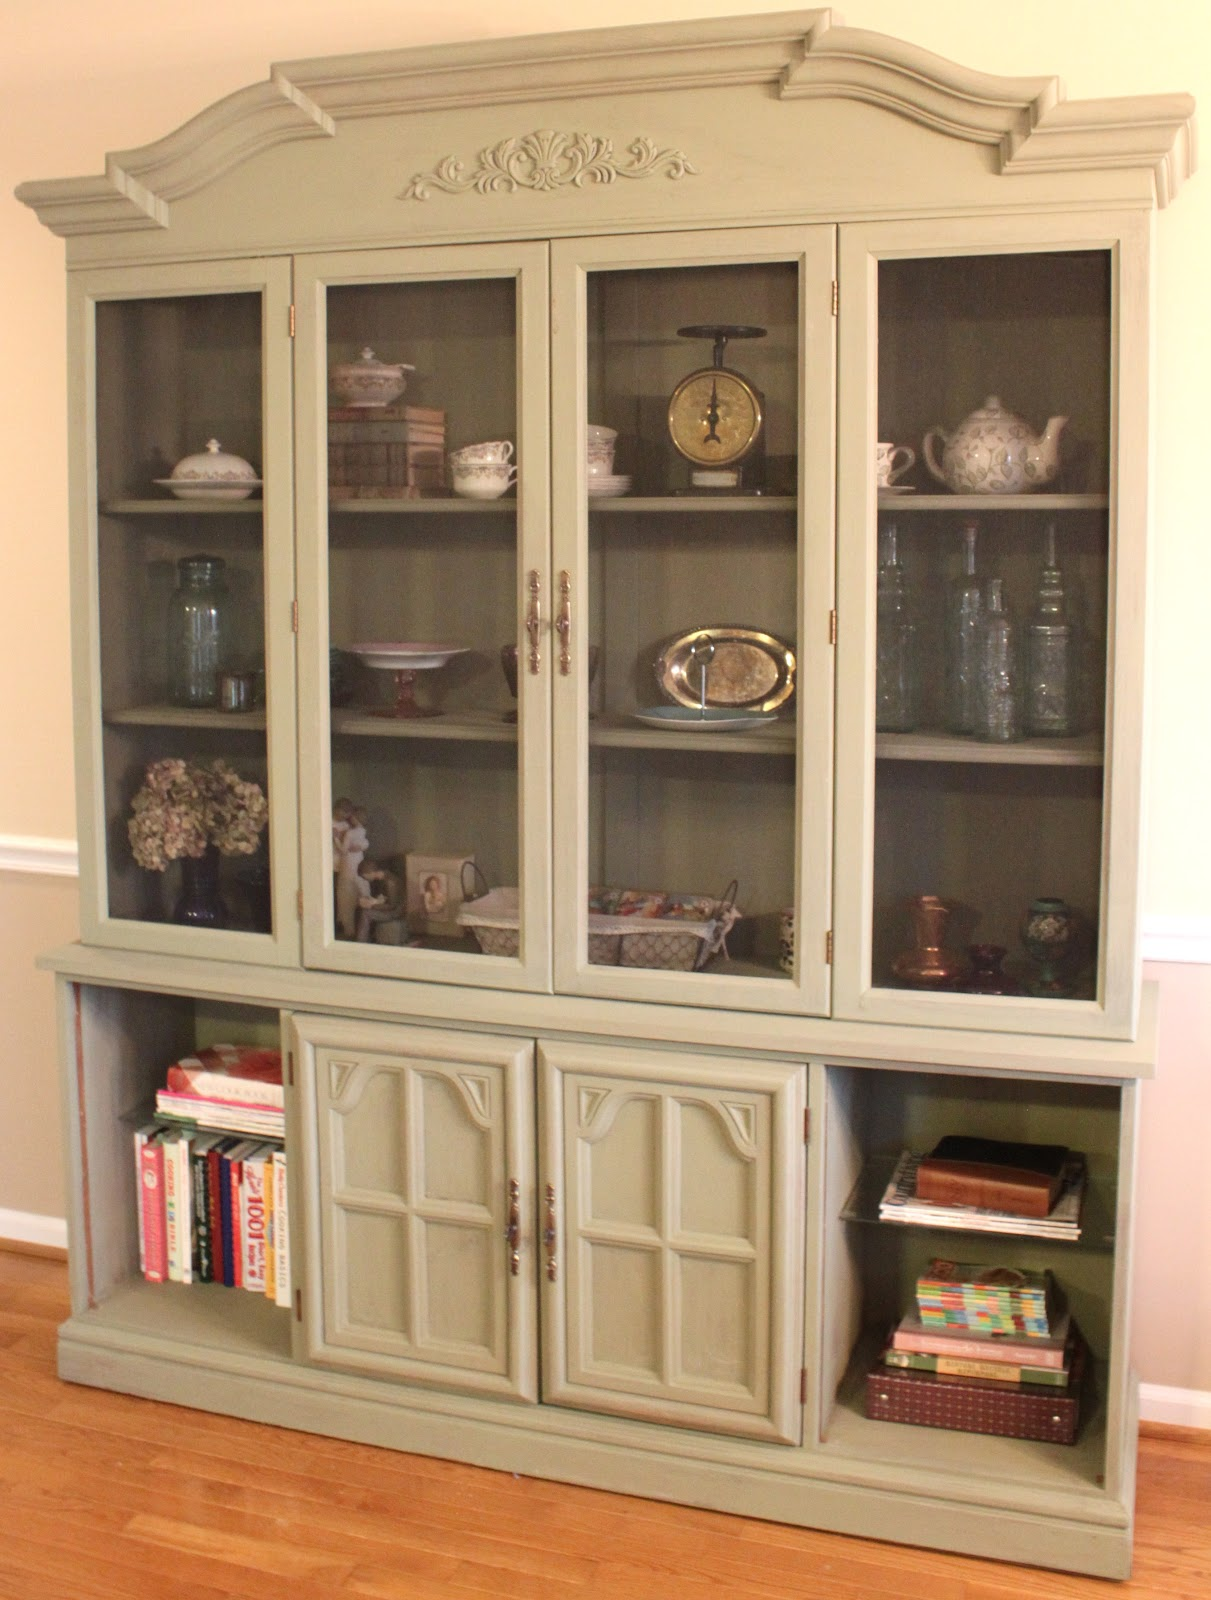 China Cabinet Turned Farmhouse Style Pantry